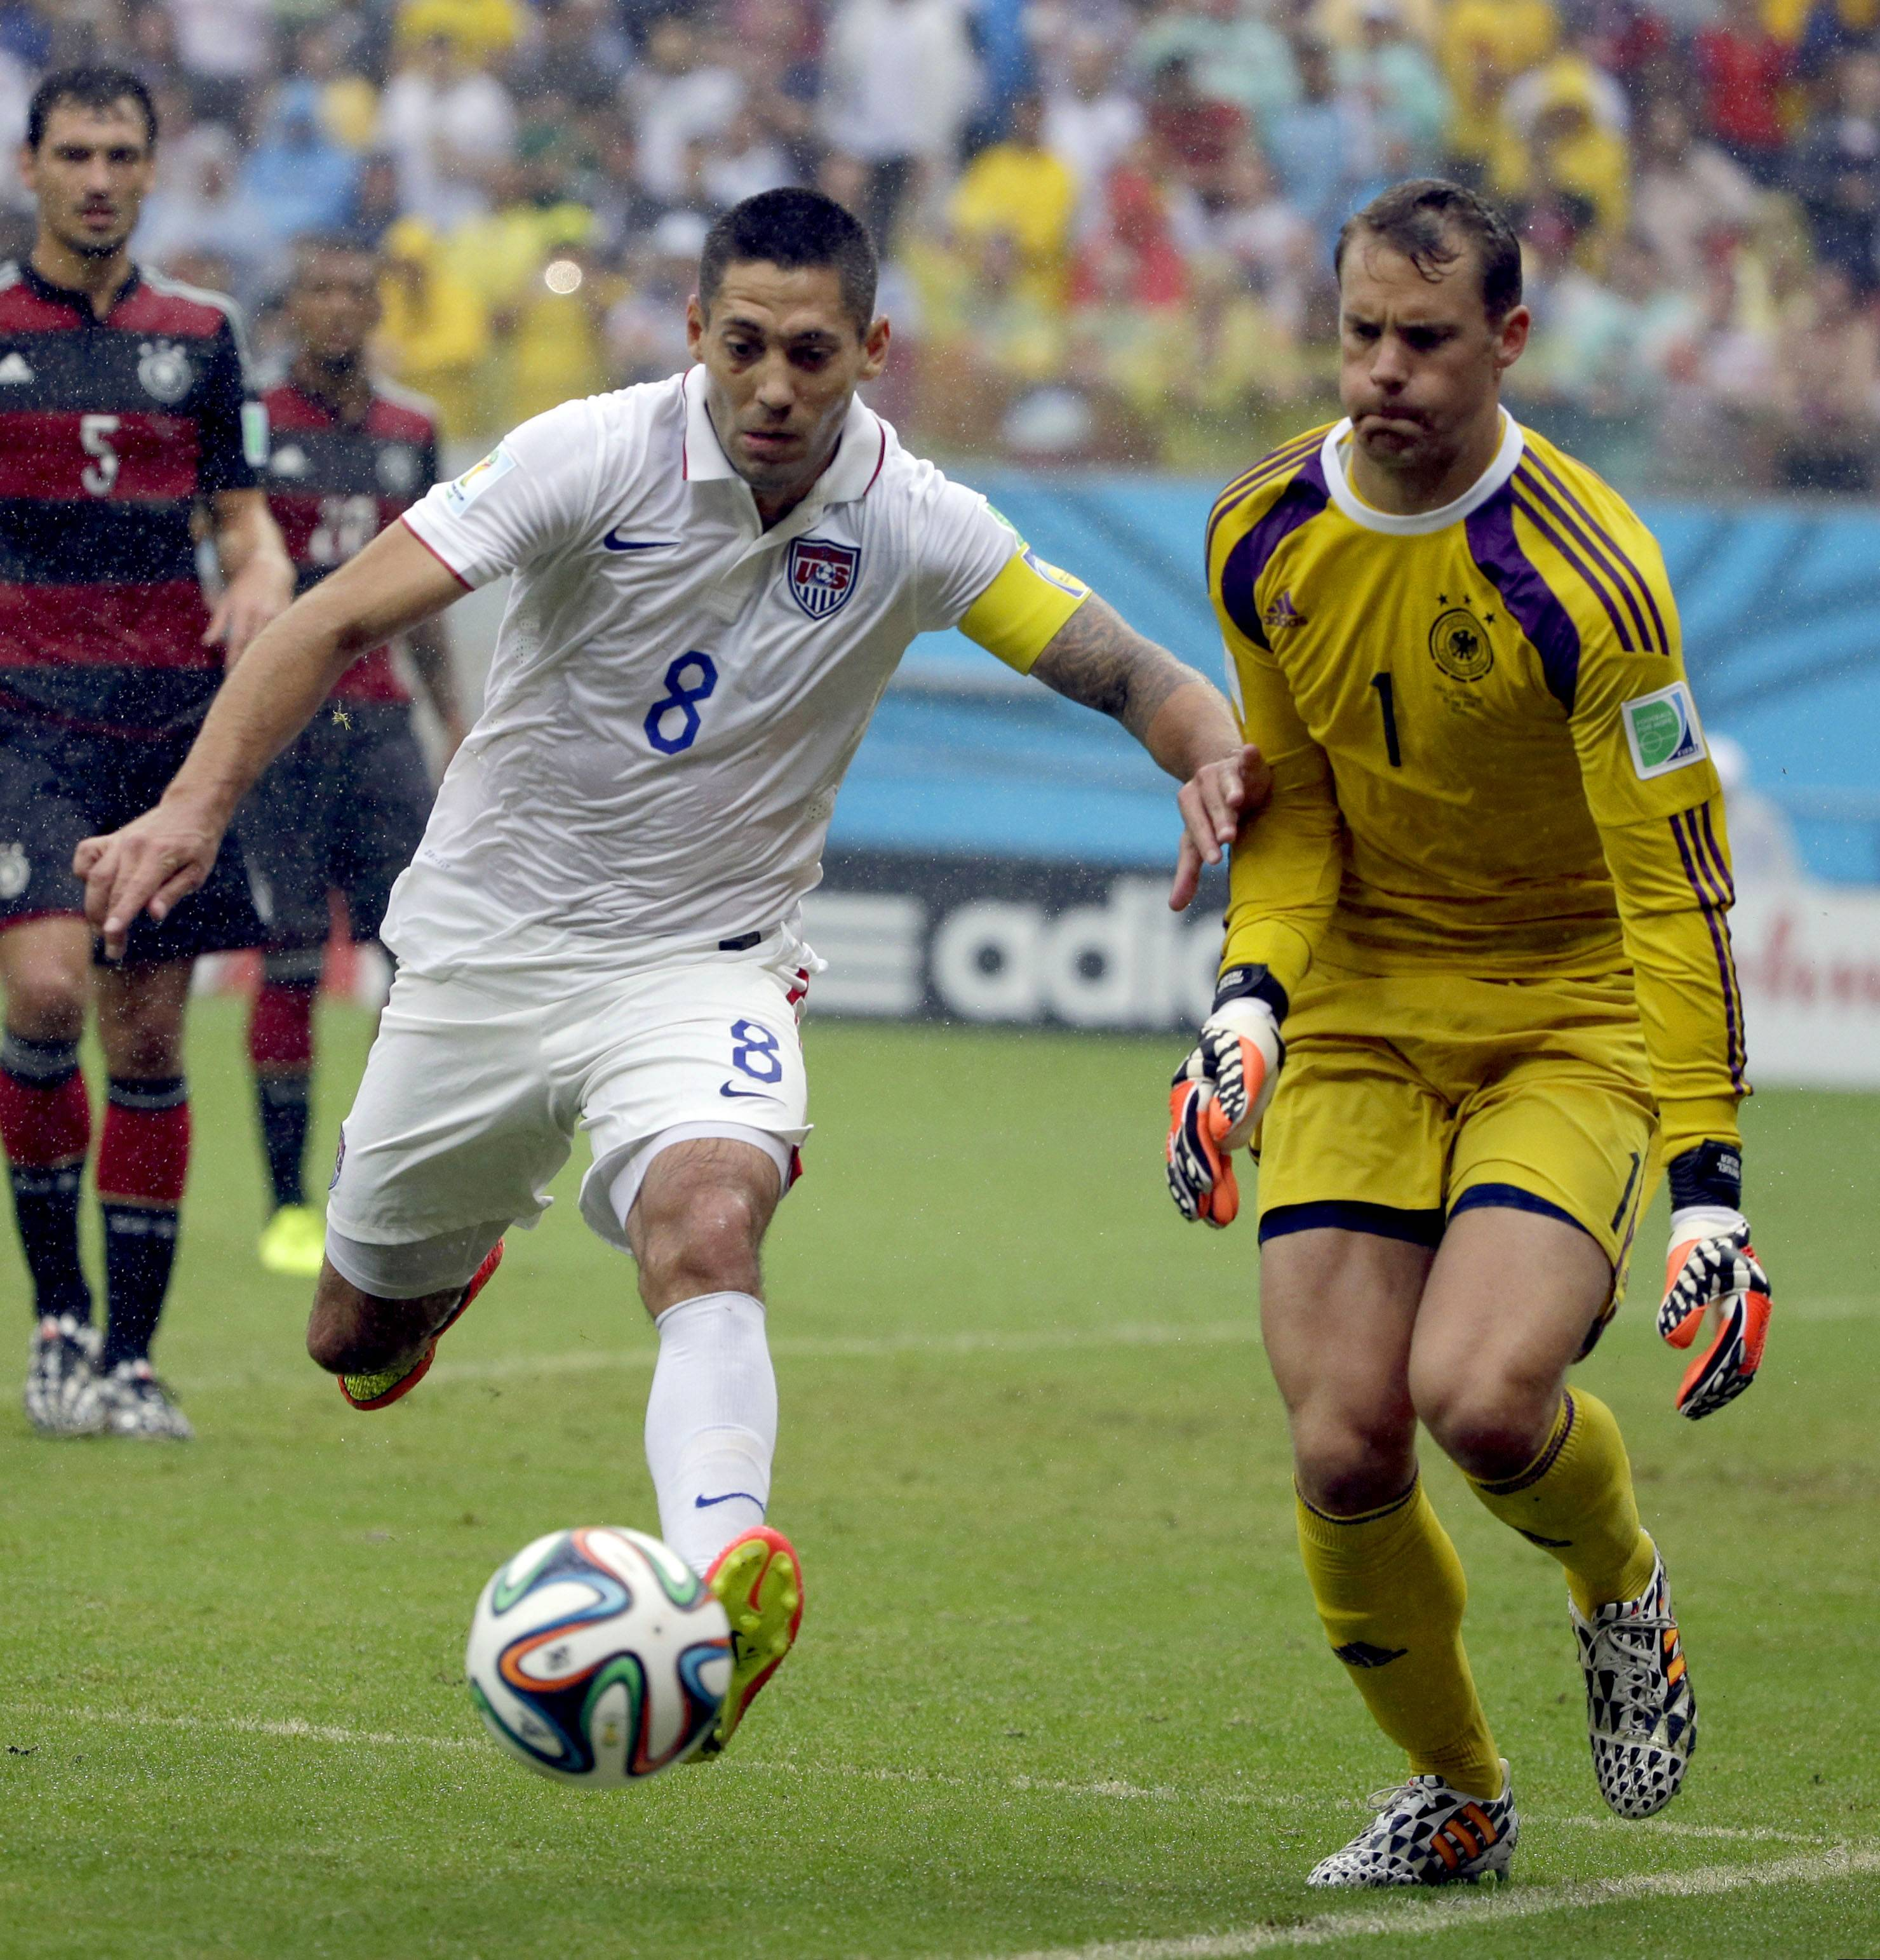 United States' Clint Dempsey chases the ball in front of Germany's goalkeeper Manuel Neuer during the group G World Cup soccer match Thursday. Coach Jurgen Klinsmann is eager for the U.S. to create more chances in Tuesday's second-round game against Belgium The U.S. had just 72 attacks during three group-stage games, according to FIFA. That ranked 31st among the 32 teams, ahead of only Costa Rica's 69.